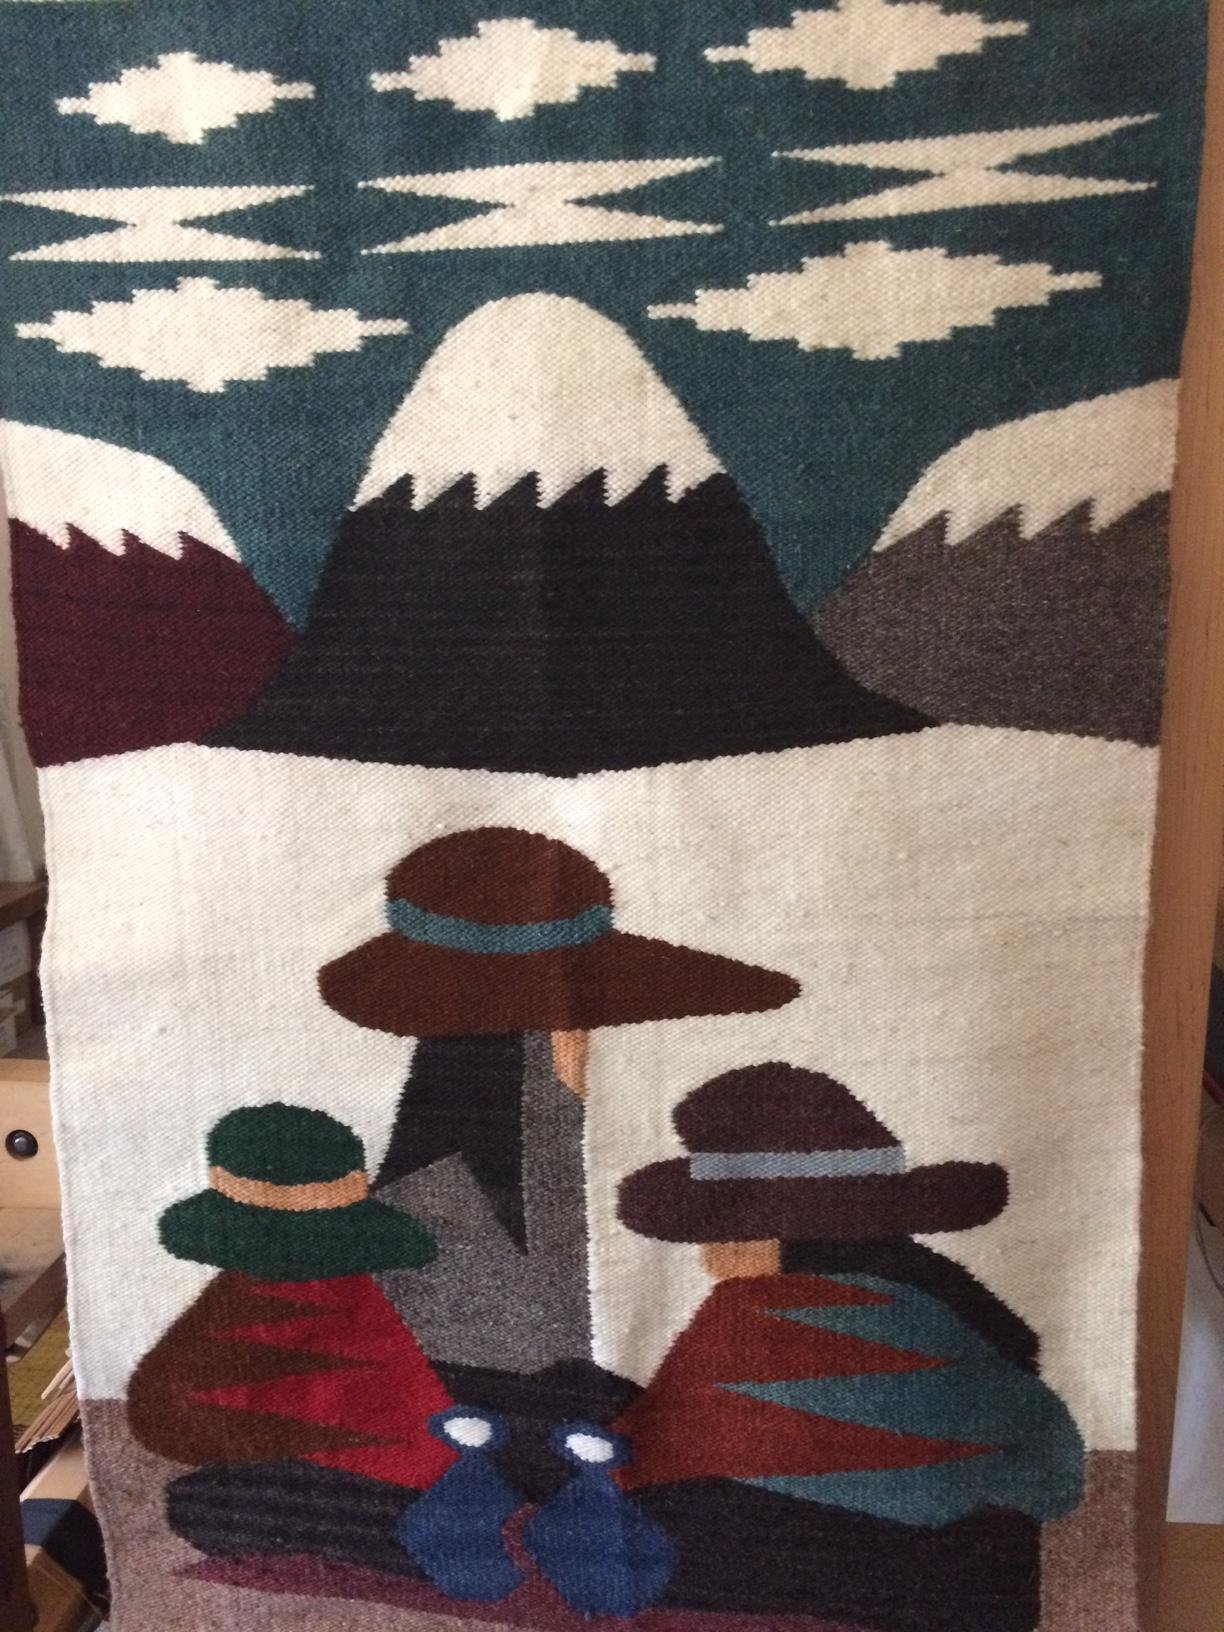 3 Peruvian Traders Resting Near Andean Peaks Handwoven Wool Tapestry